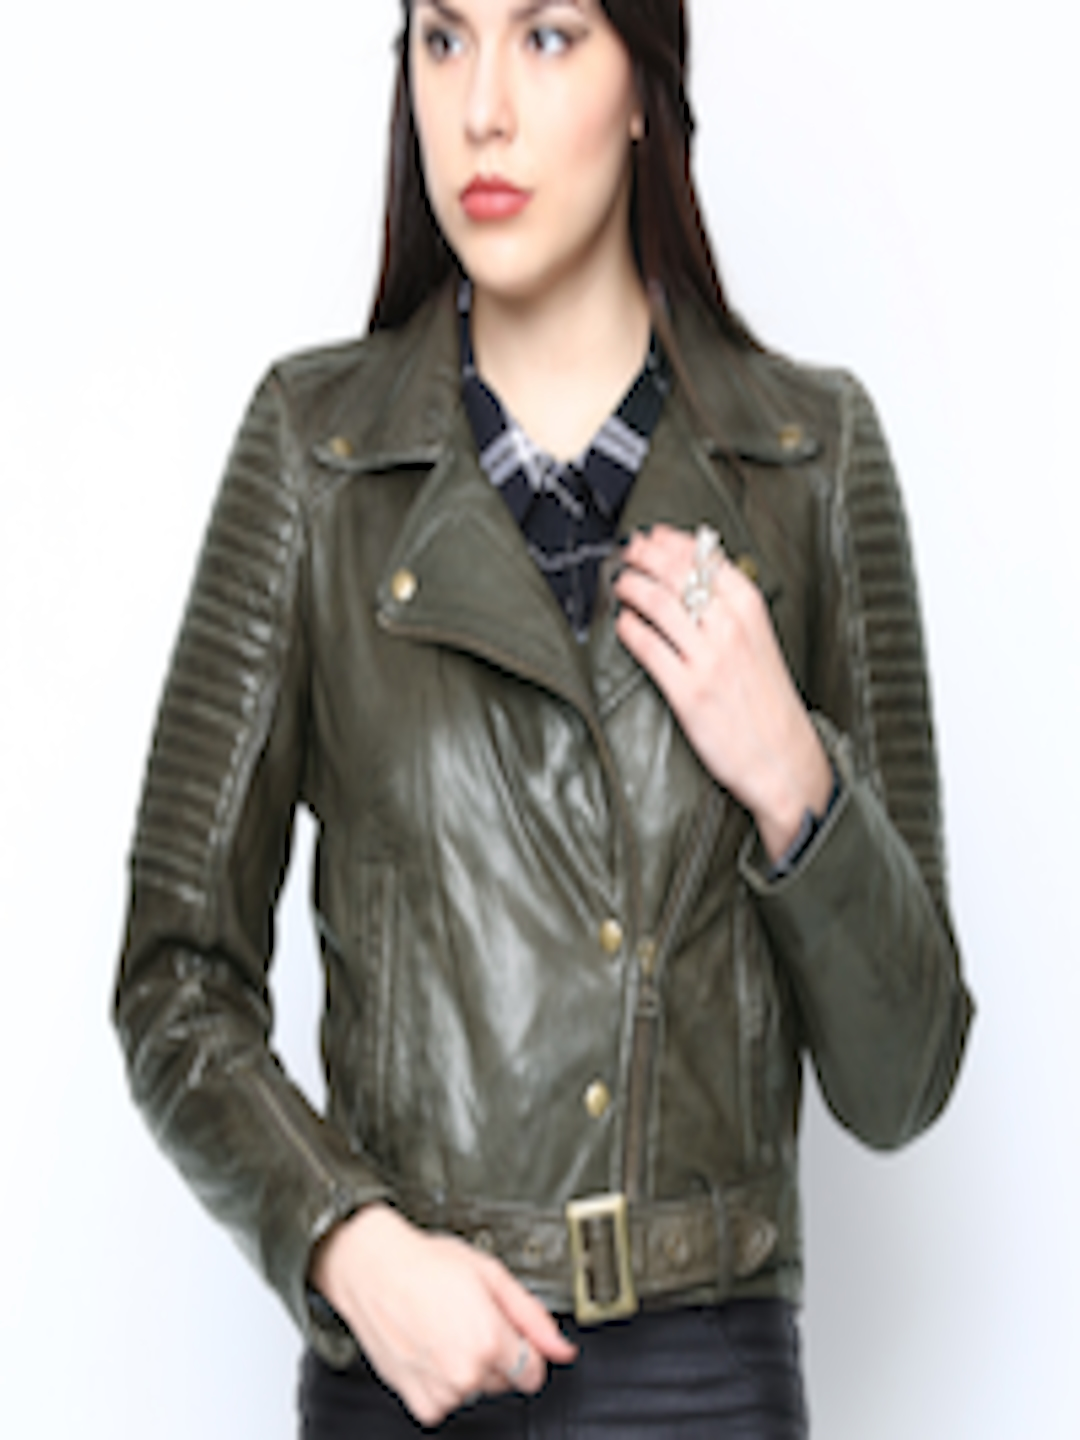 promo codes discount sale select for genuine Buy BARESKIN Women Olive Green Leather Jacket - - Apparel for Women